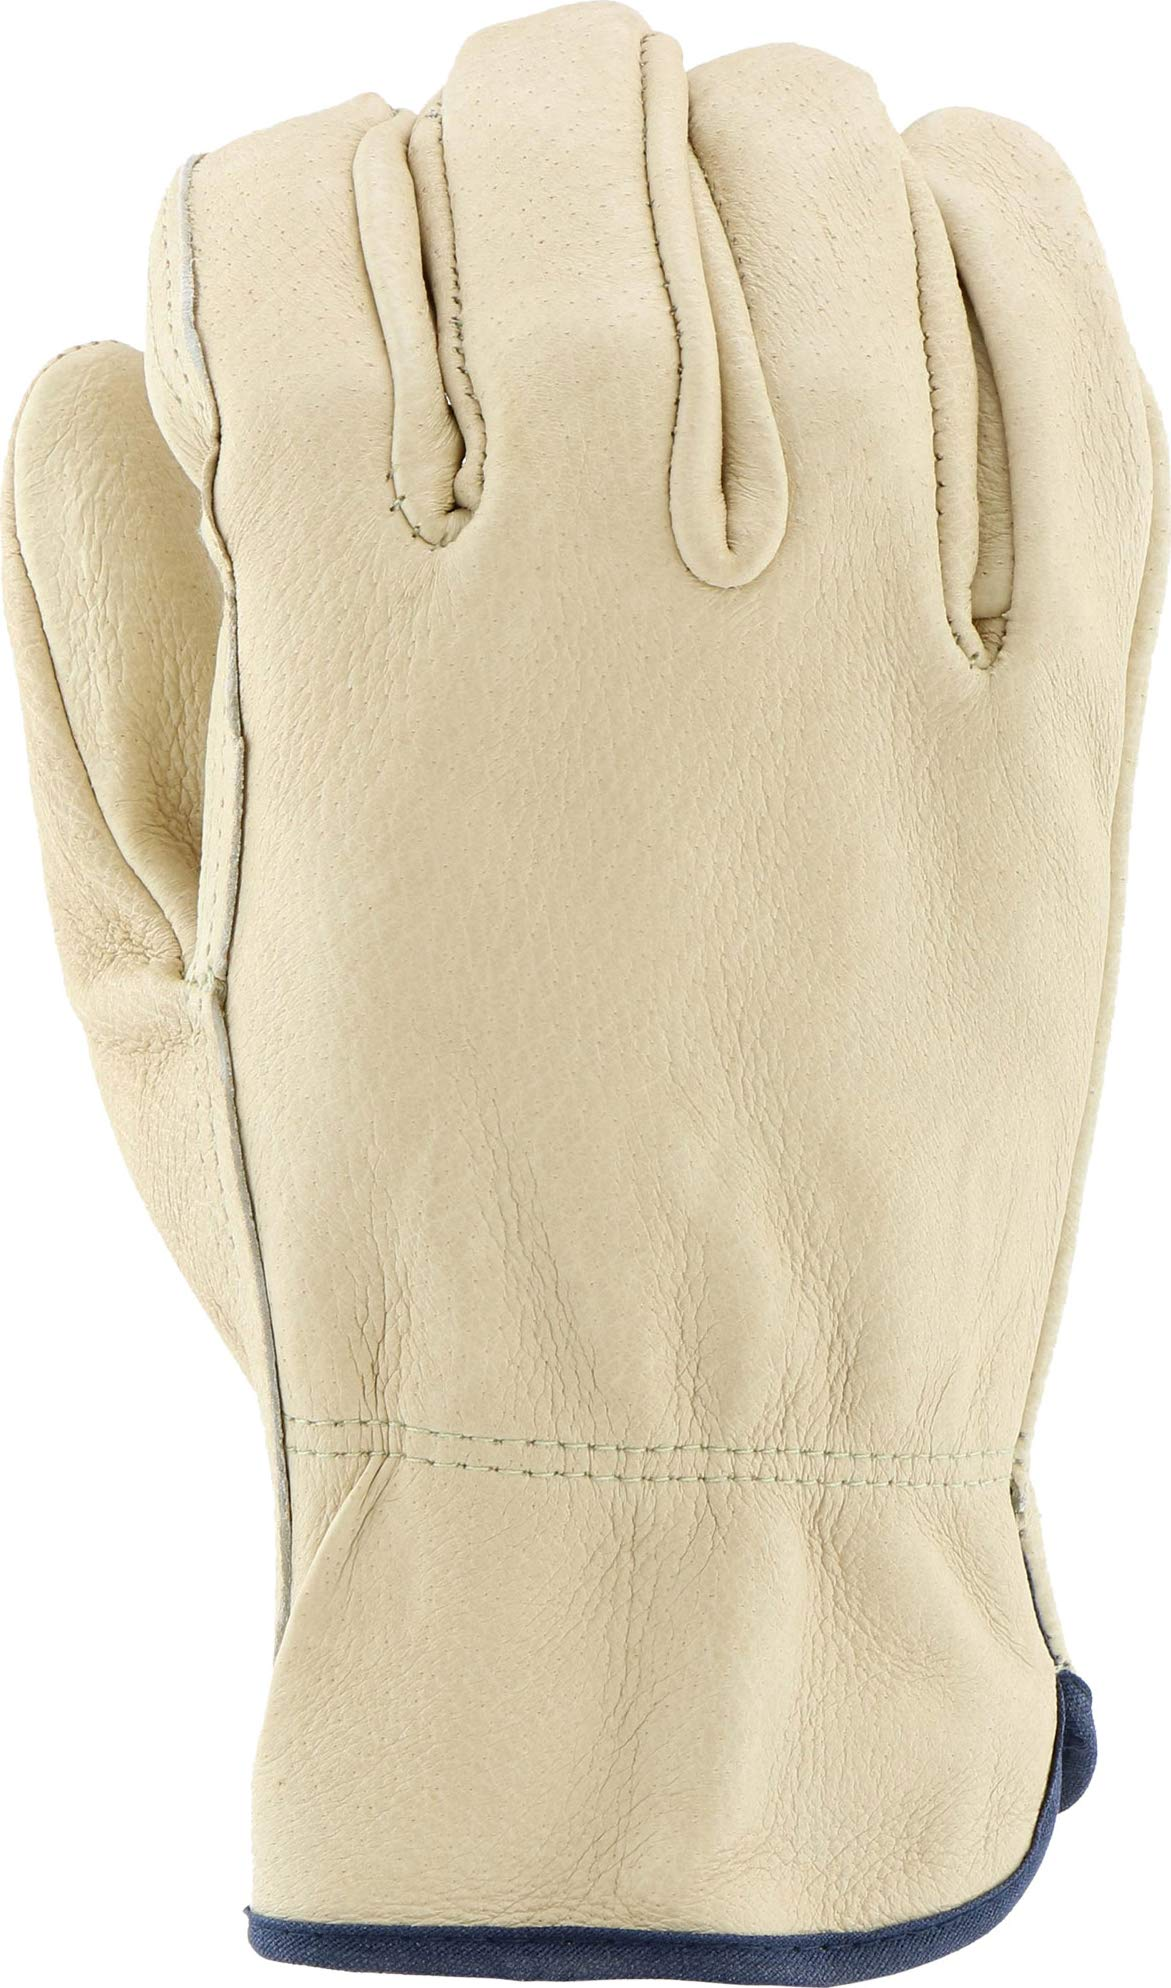 West Chester 994 Select Grain Pigskin Leather Driver Work Gloves: Straight Thumb, Large, 12 Pairs by West Chester (Image #4)